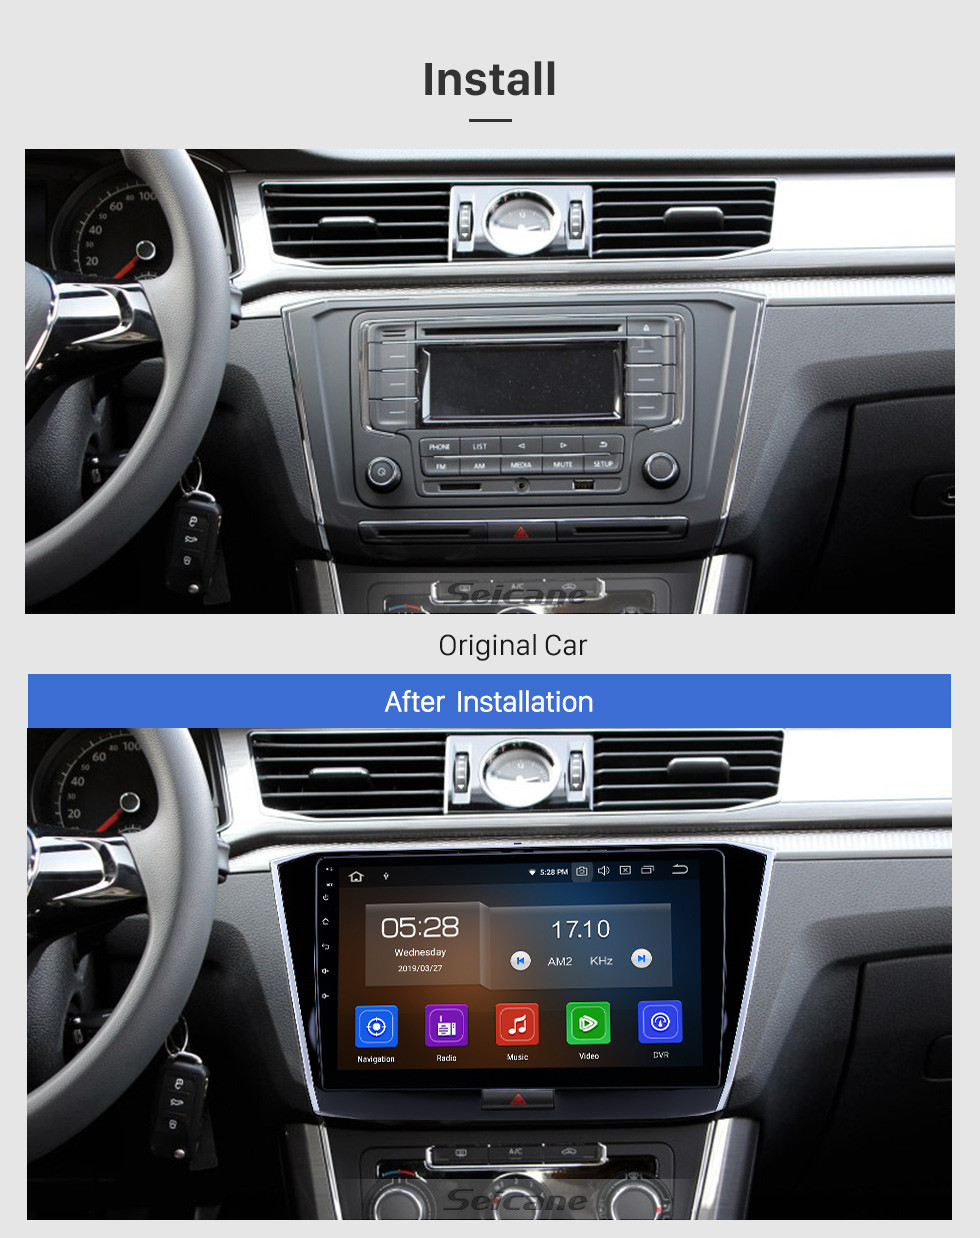 Seicane 10.1 inch 2016-2018 VW Volkswagen Passat Android 10.0 GPS Navigation Radio Bluetooth HD Touchscreen AUX USB Carplay support Mirror Link